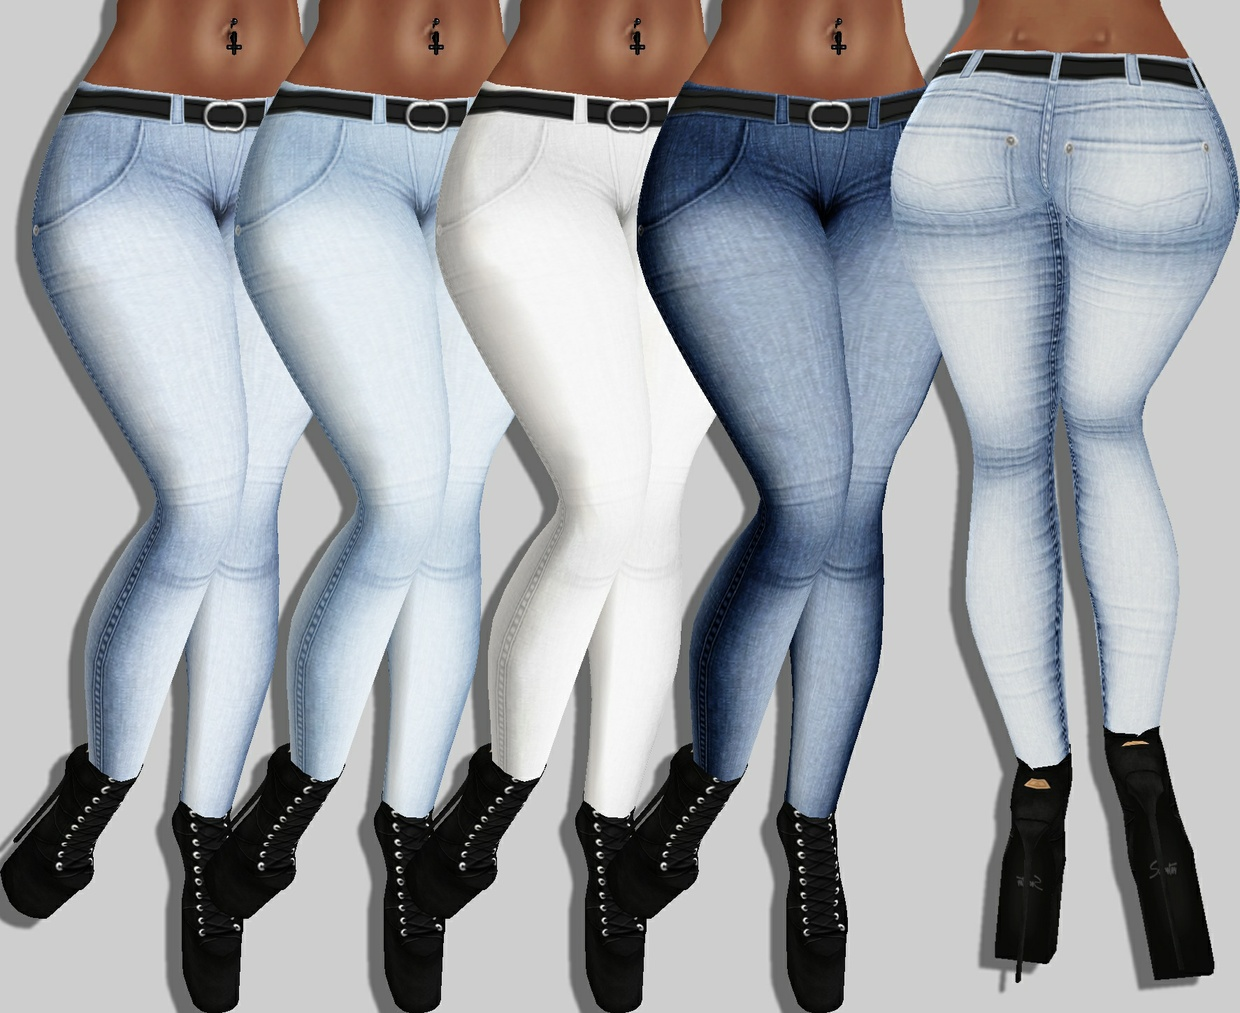 Imvu Sis3d Jeans limited